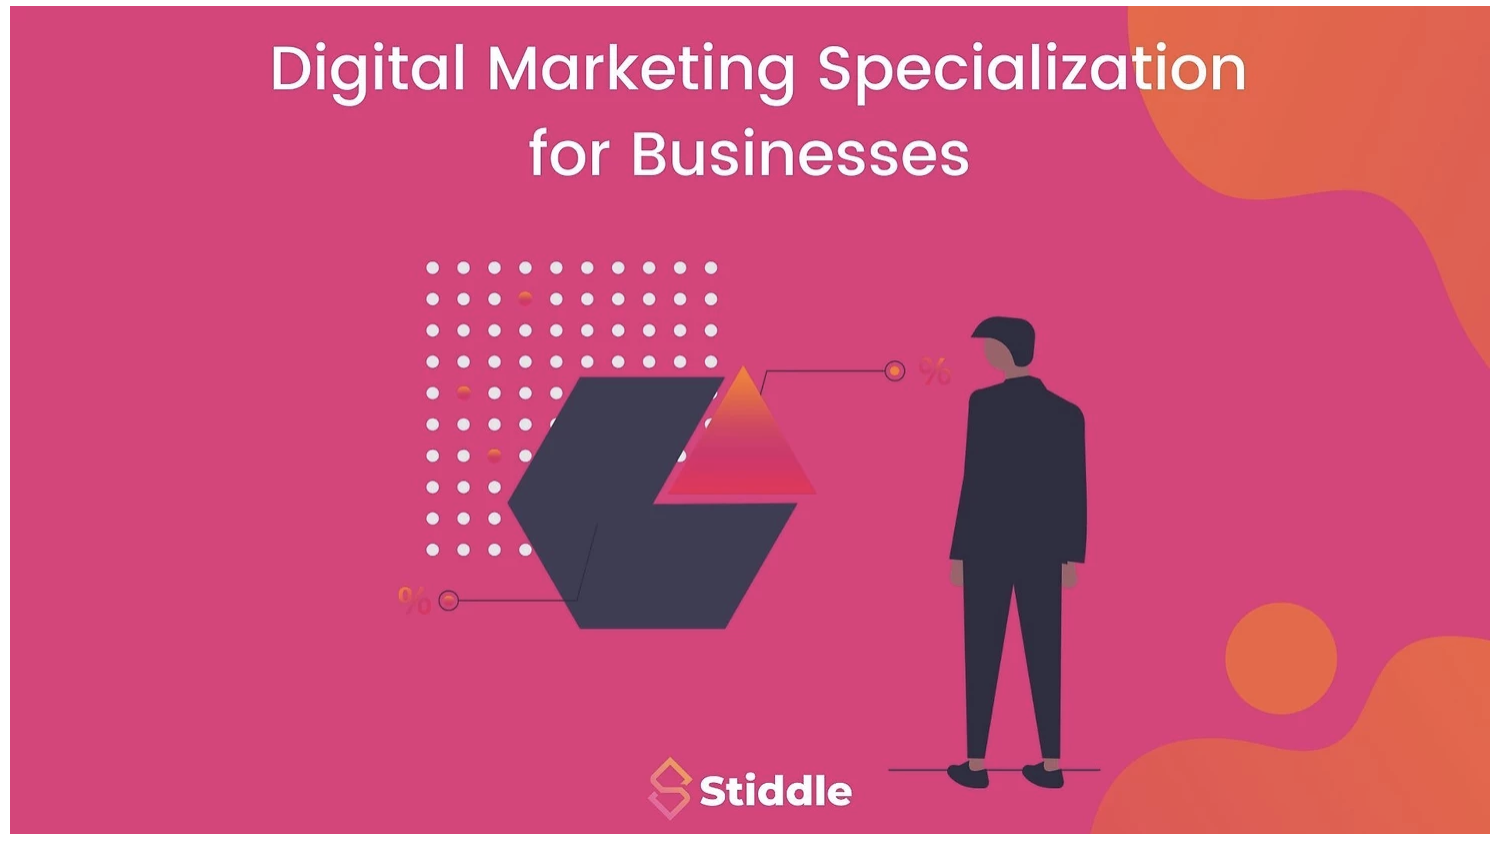 What the Use of Digital Marketing Specialization in a Company Does for a Business